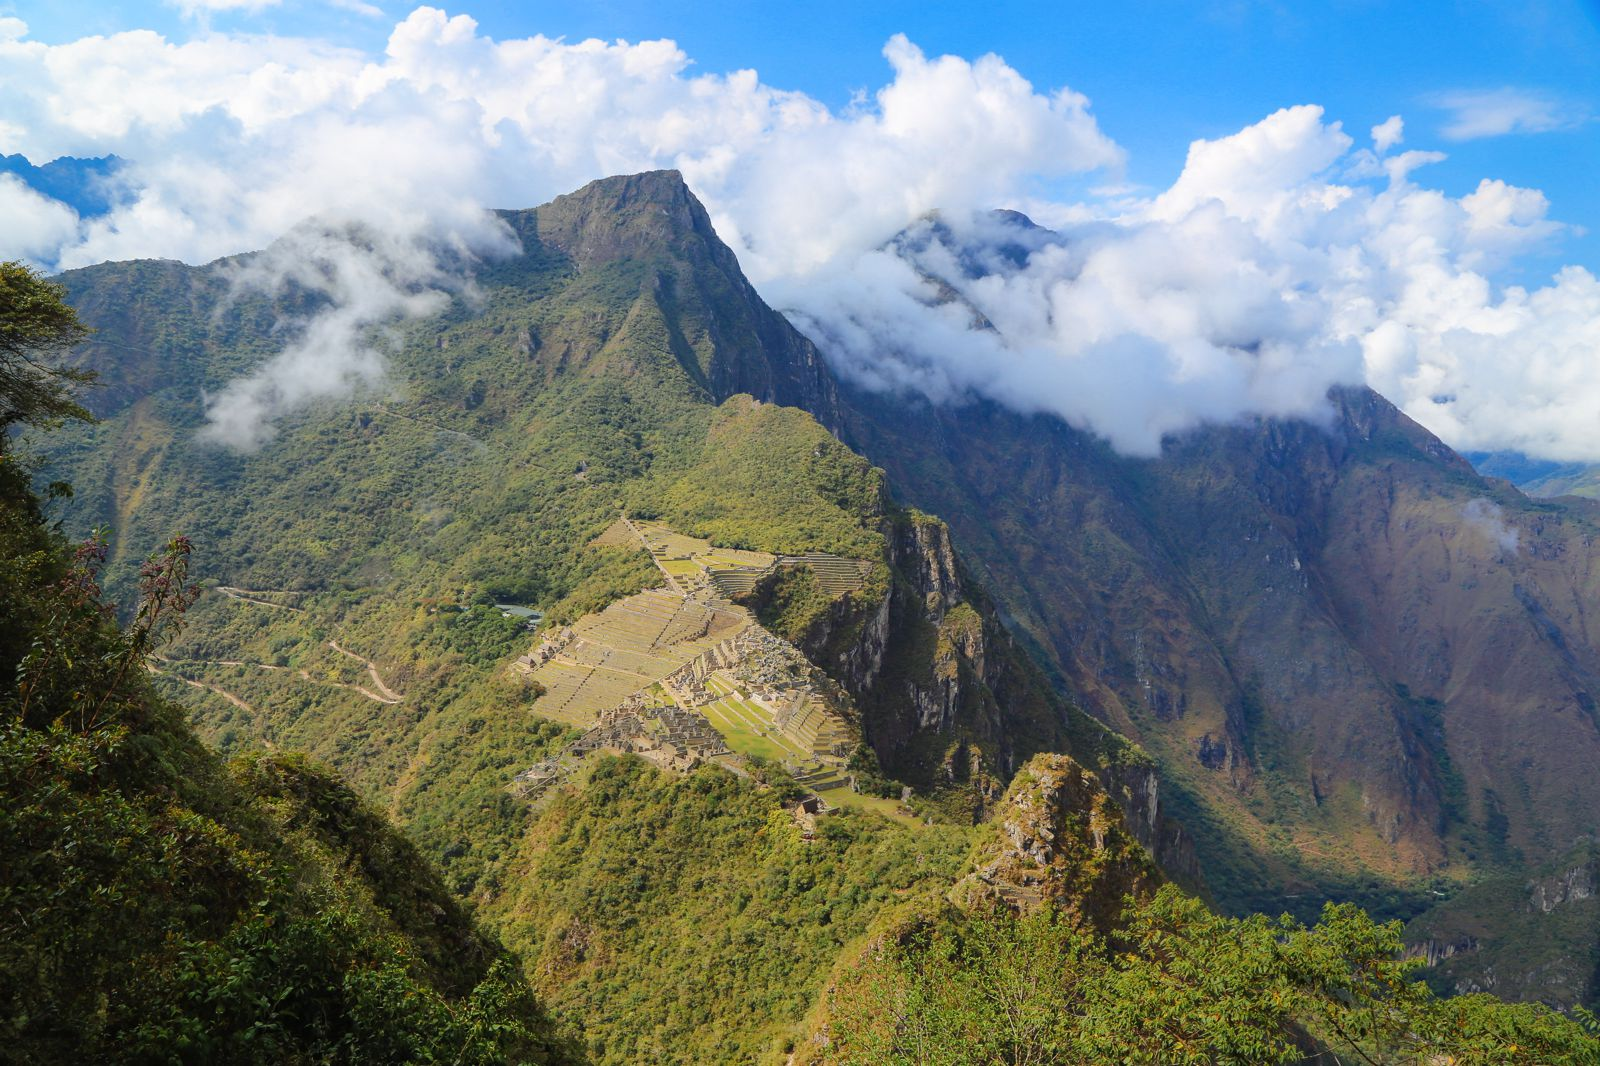 This Is The Most Unique View Of Machu Picchu At The Top Of Huayna